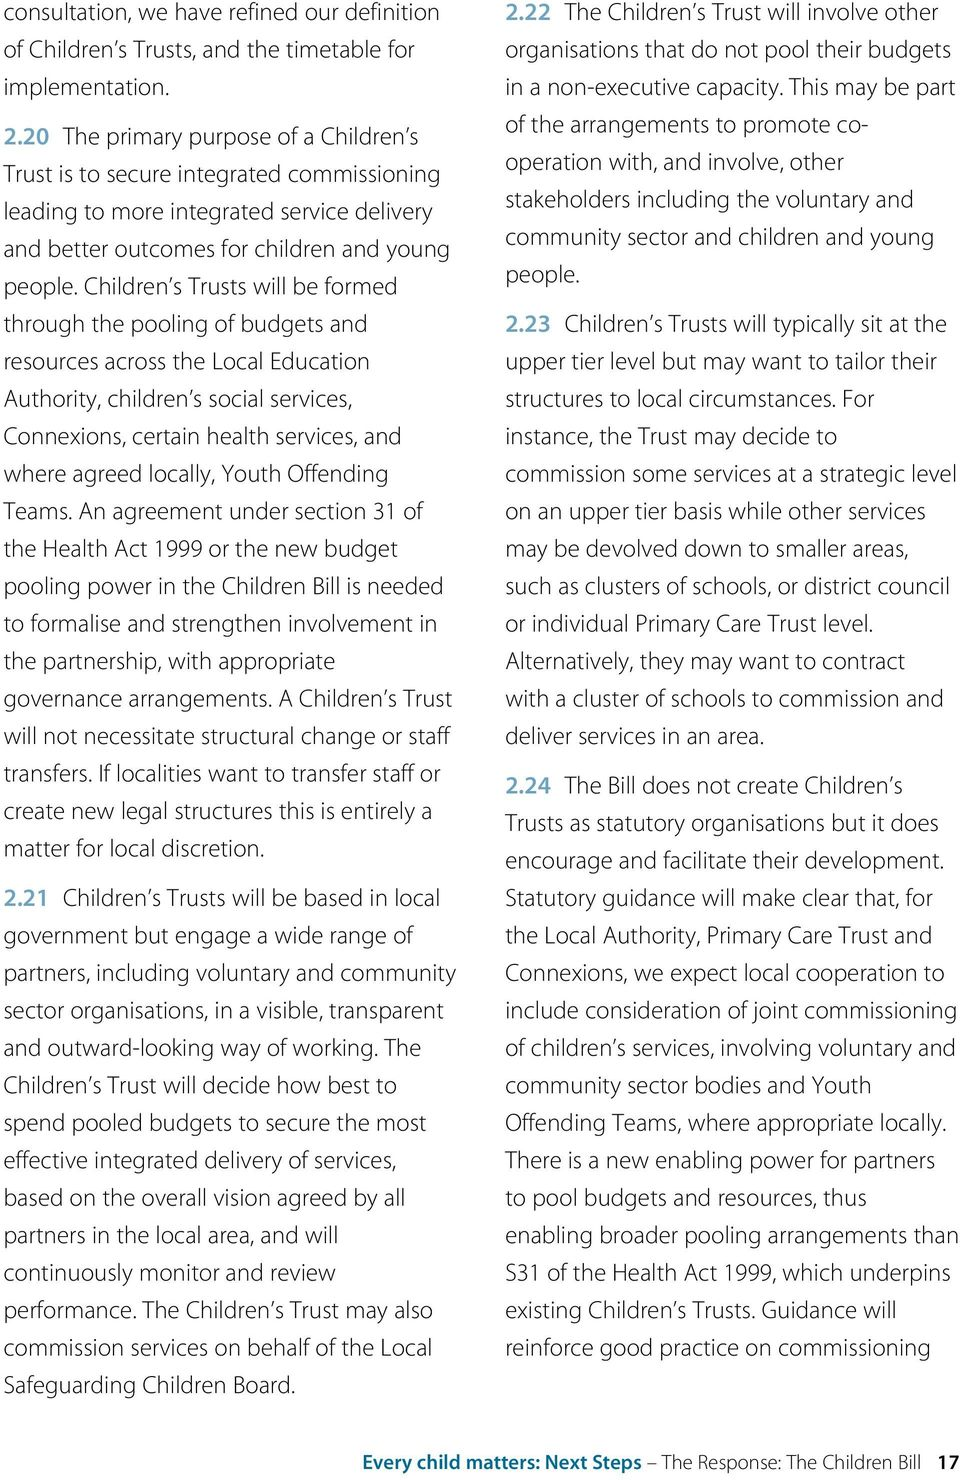 Children s Trusts will be formed through the pooling of budgets and resources across the Local Education Authority, children s social services, Connexions, certain health services, and where agreed